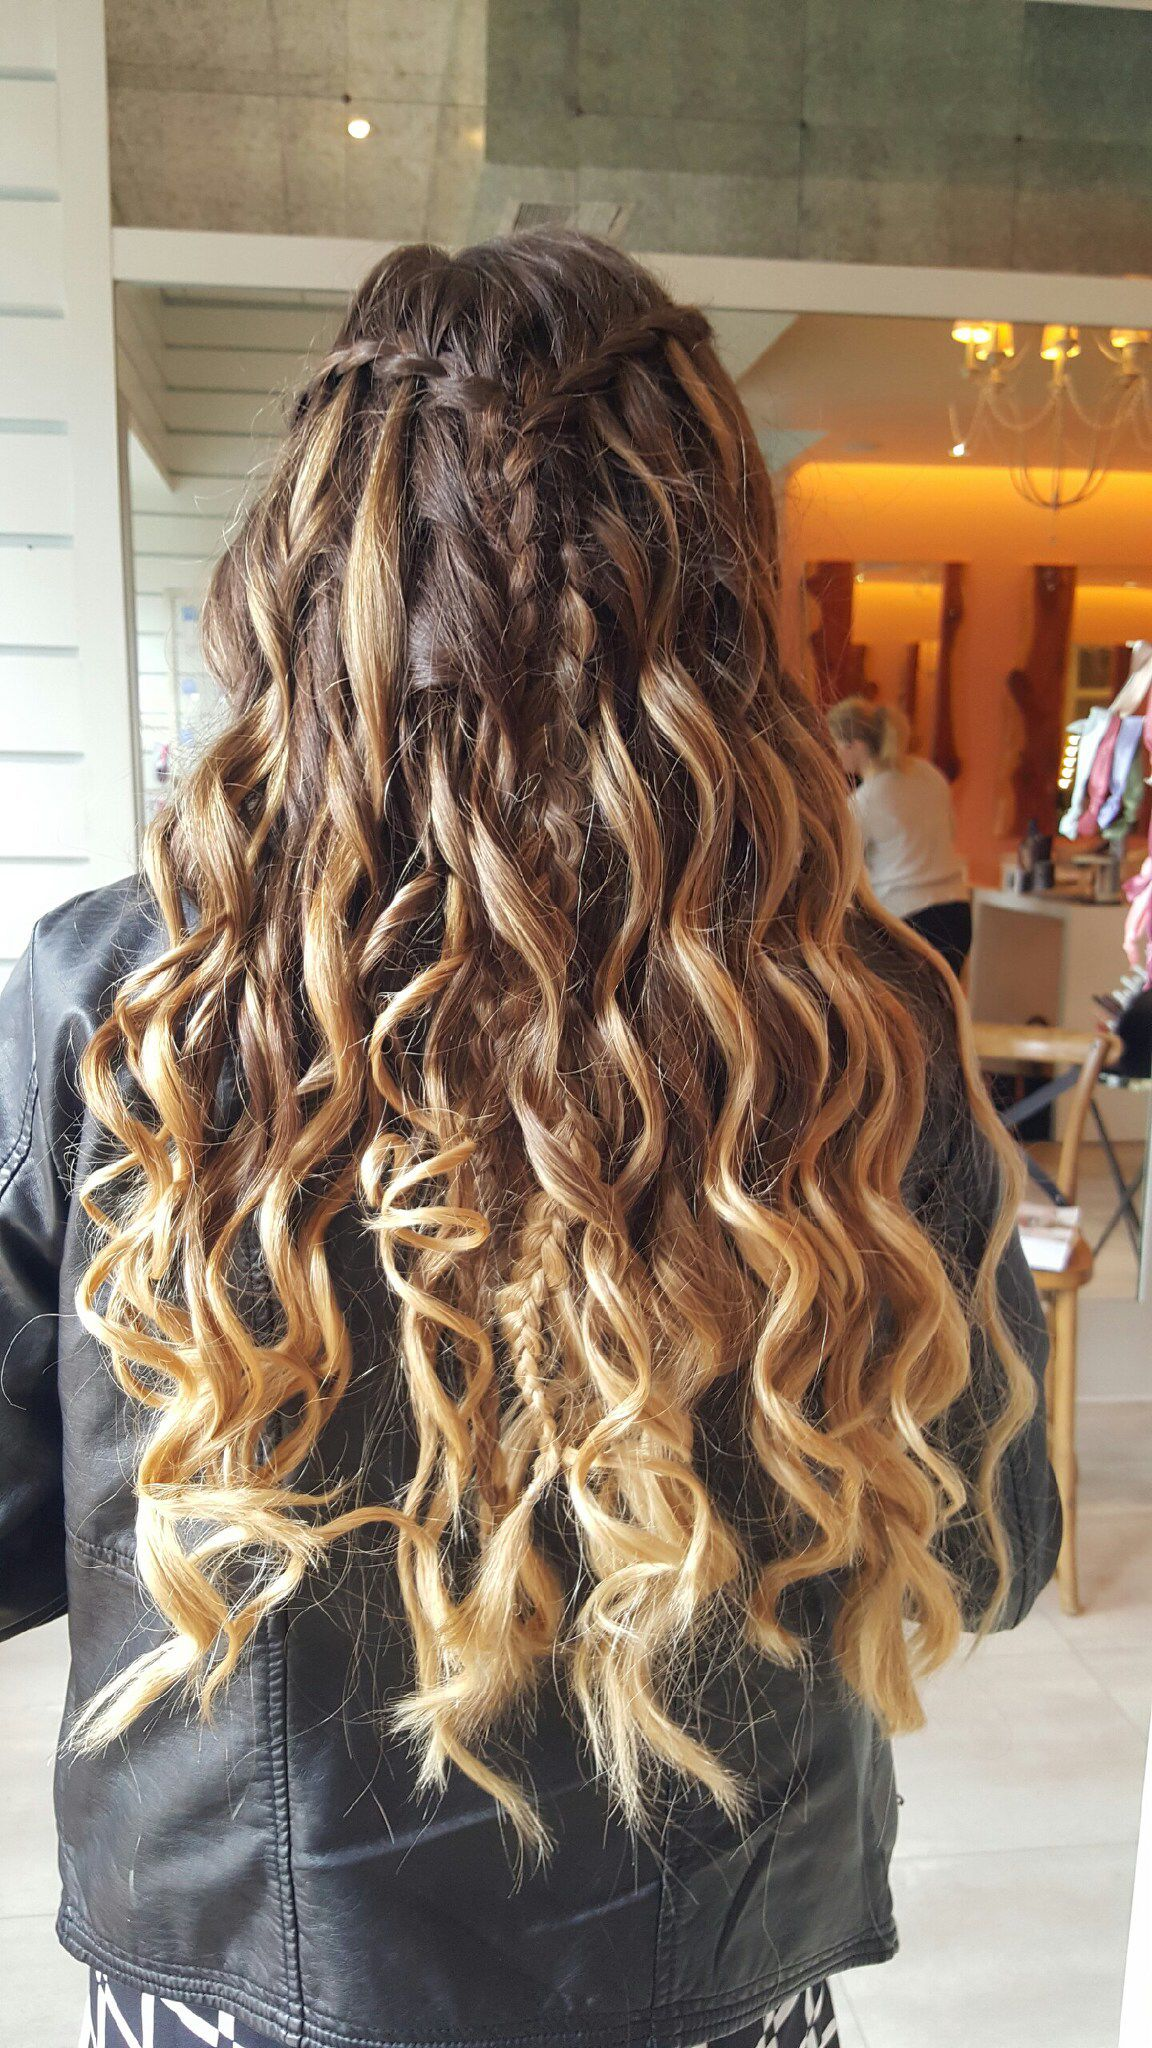 Brown curled ombré hair with waterfall braid